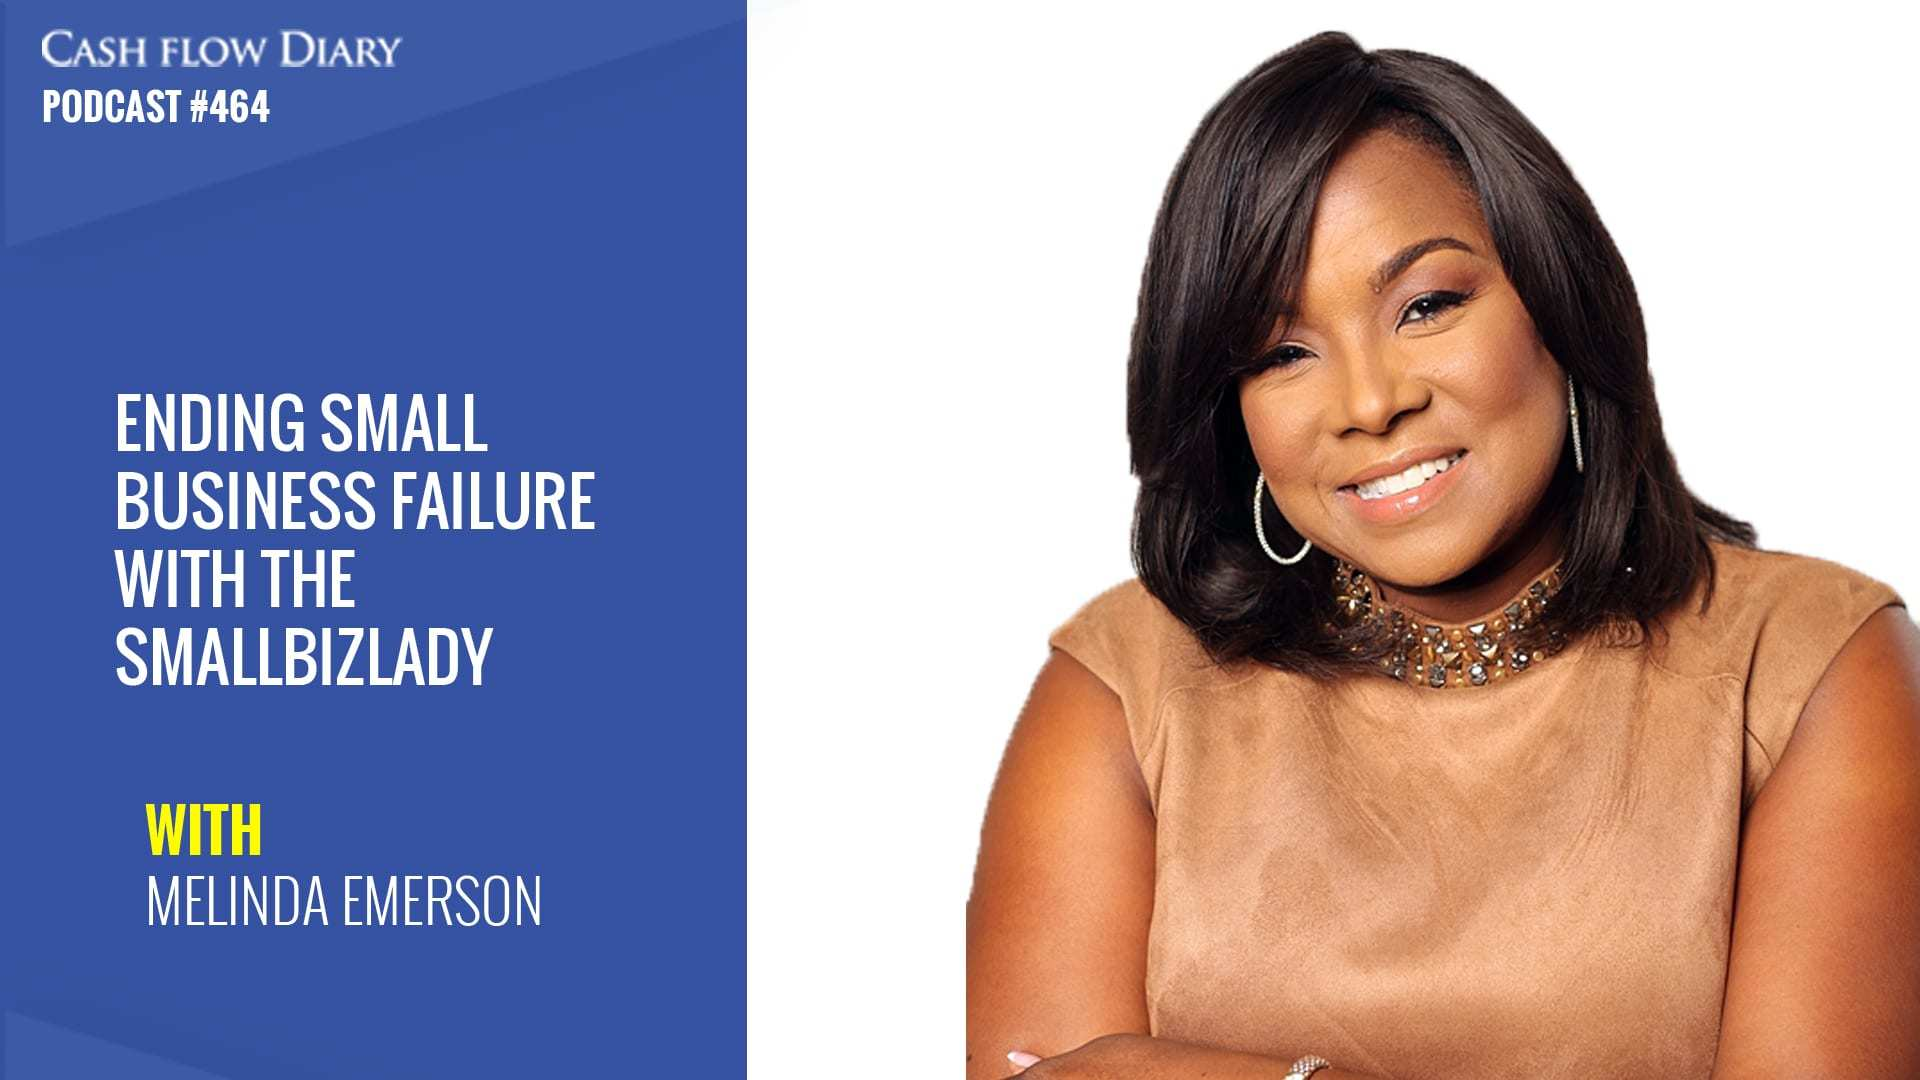 Ending Small Business Failure With The SmallBizLady